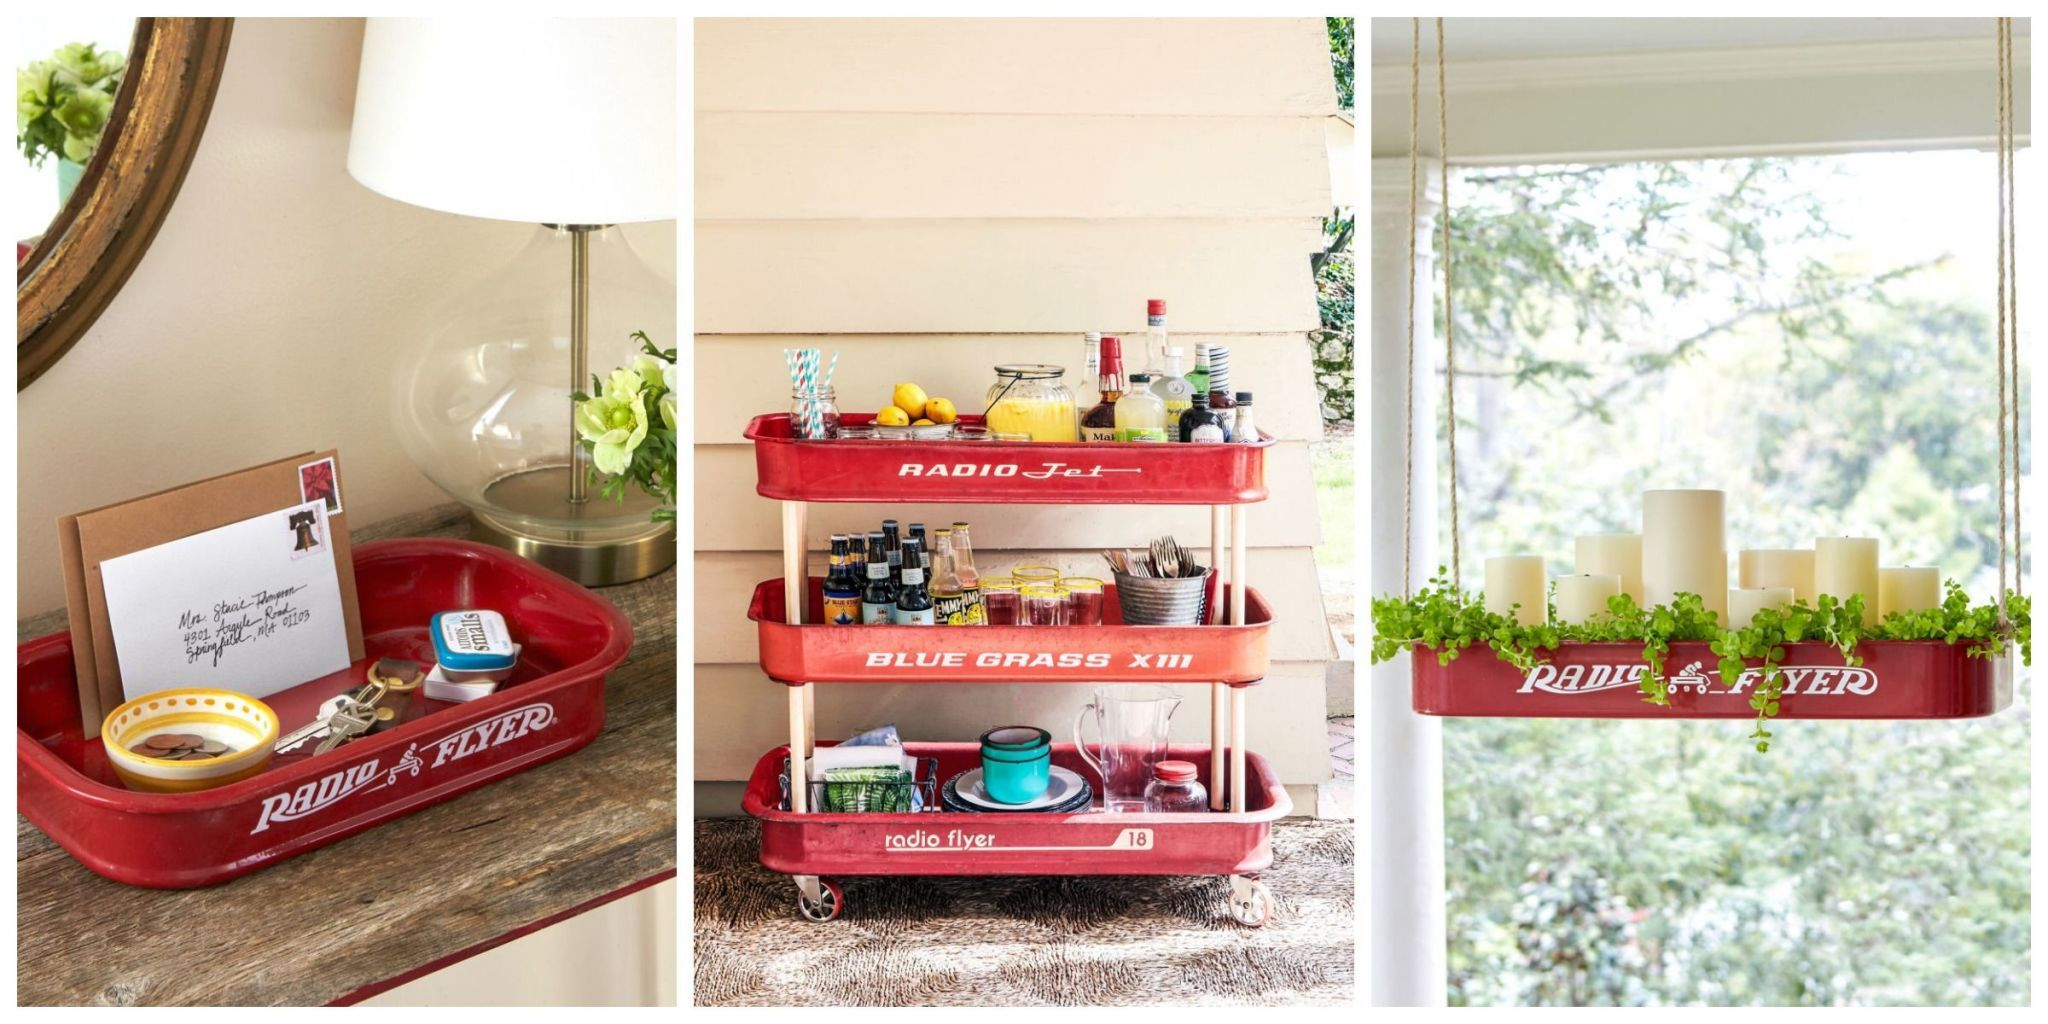 5 Crafty And Creative Ways To Repurpose A Little Red Wagon Diy Craft Projects For The Home